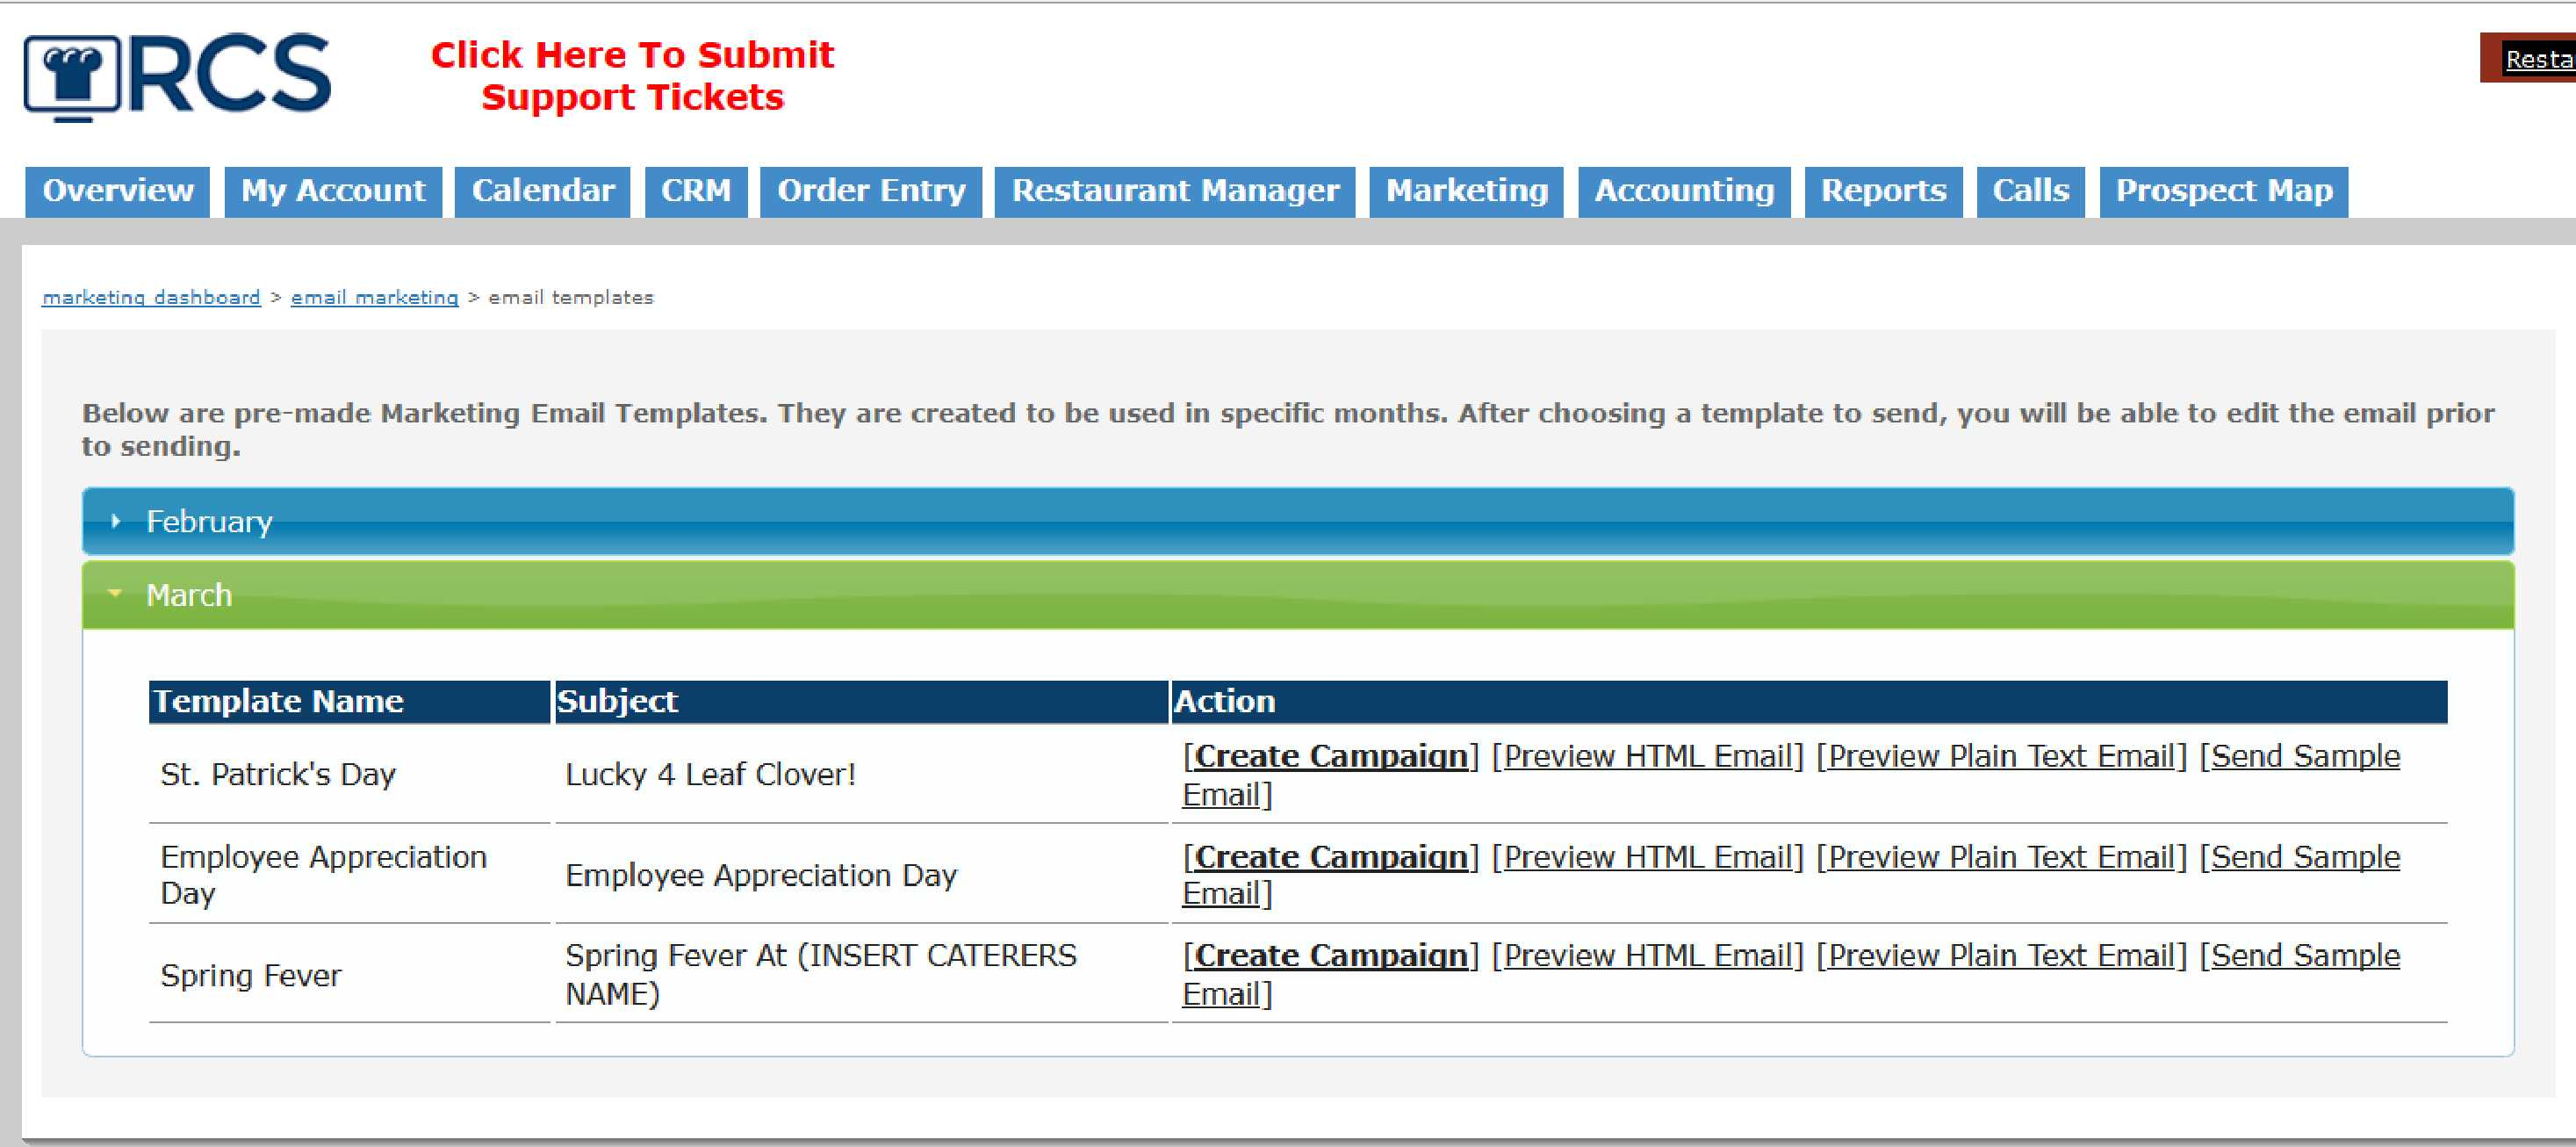 Email Templates Now In Catering Software